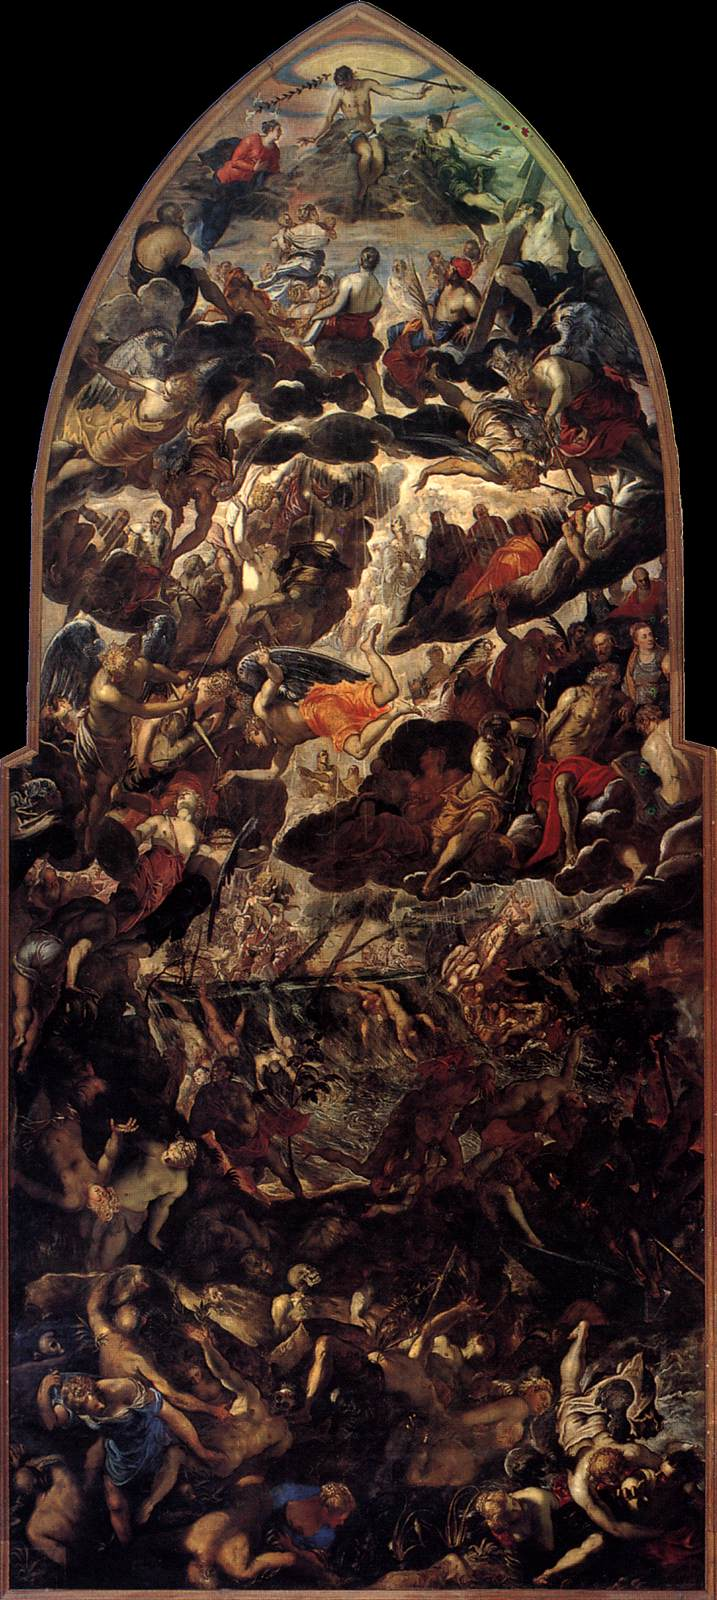 Jacopo_Tintoretto_-_The_Last_Judgment